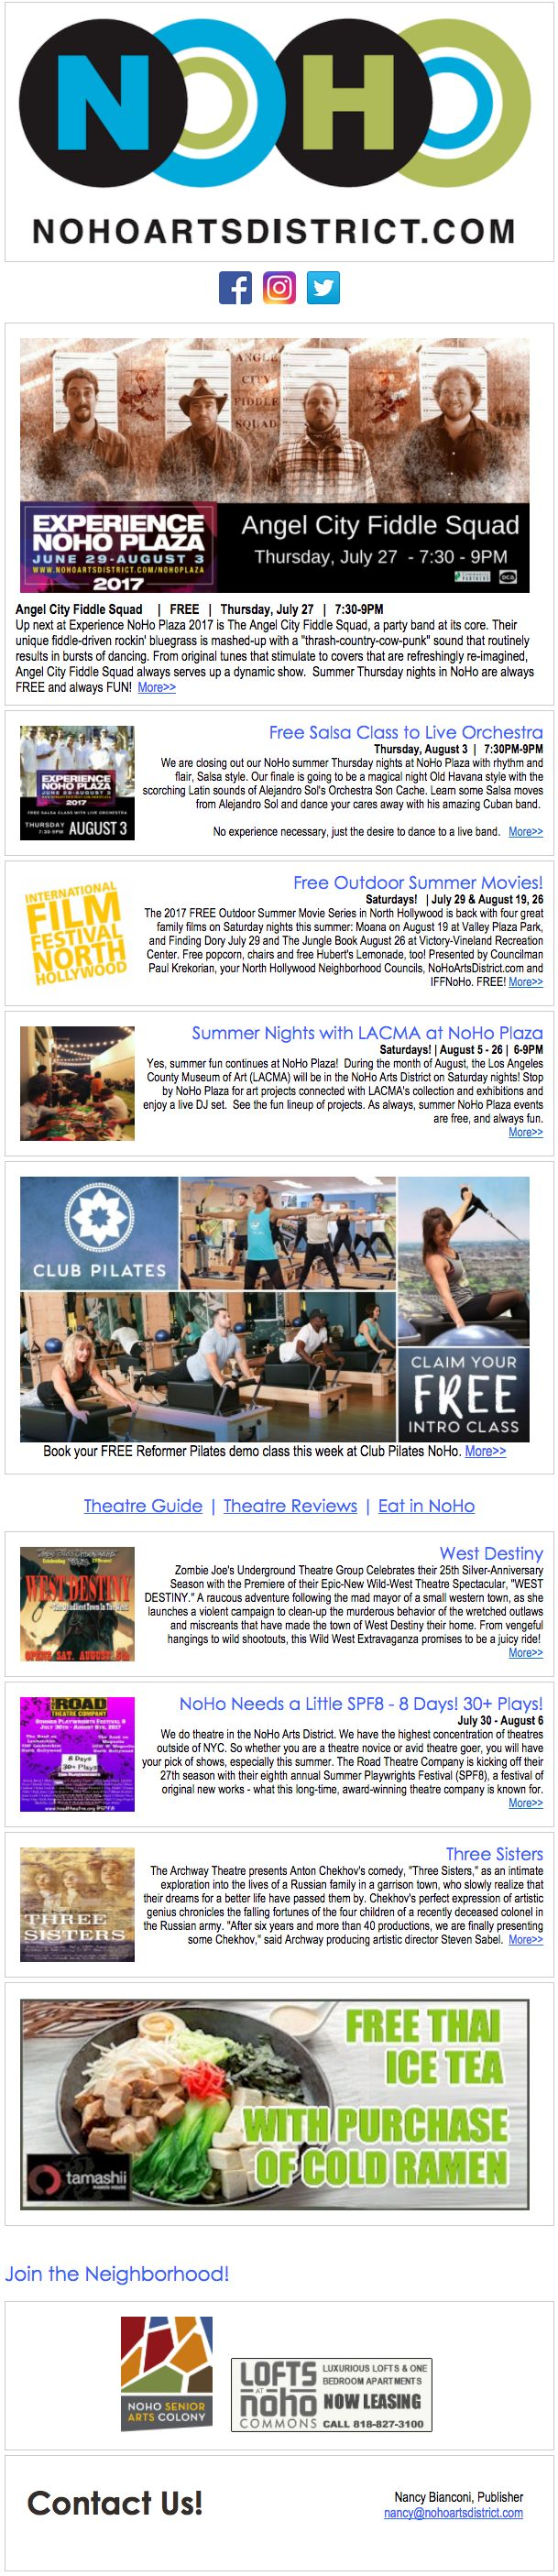 NoHo News:  It's Summer in NoHo. Fiddle Squad. 25 Years of Zombie. Salsa Class w/ Orchestra. Movies in the Park. Free Stuff. Theatre